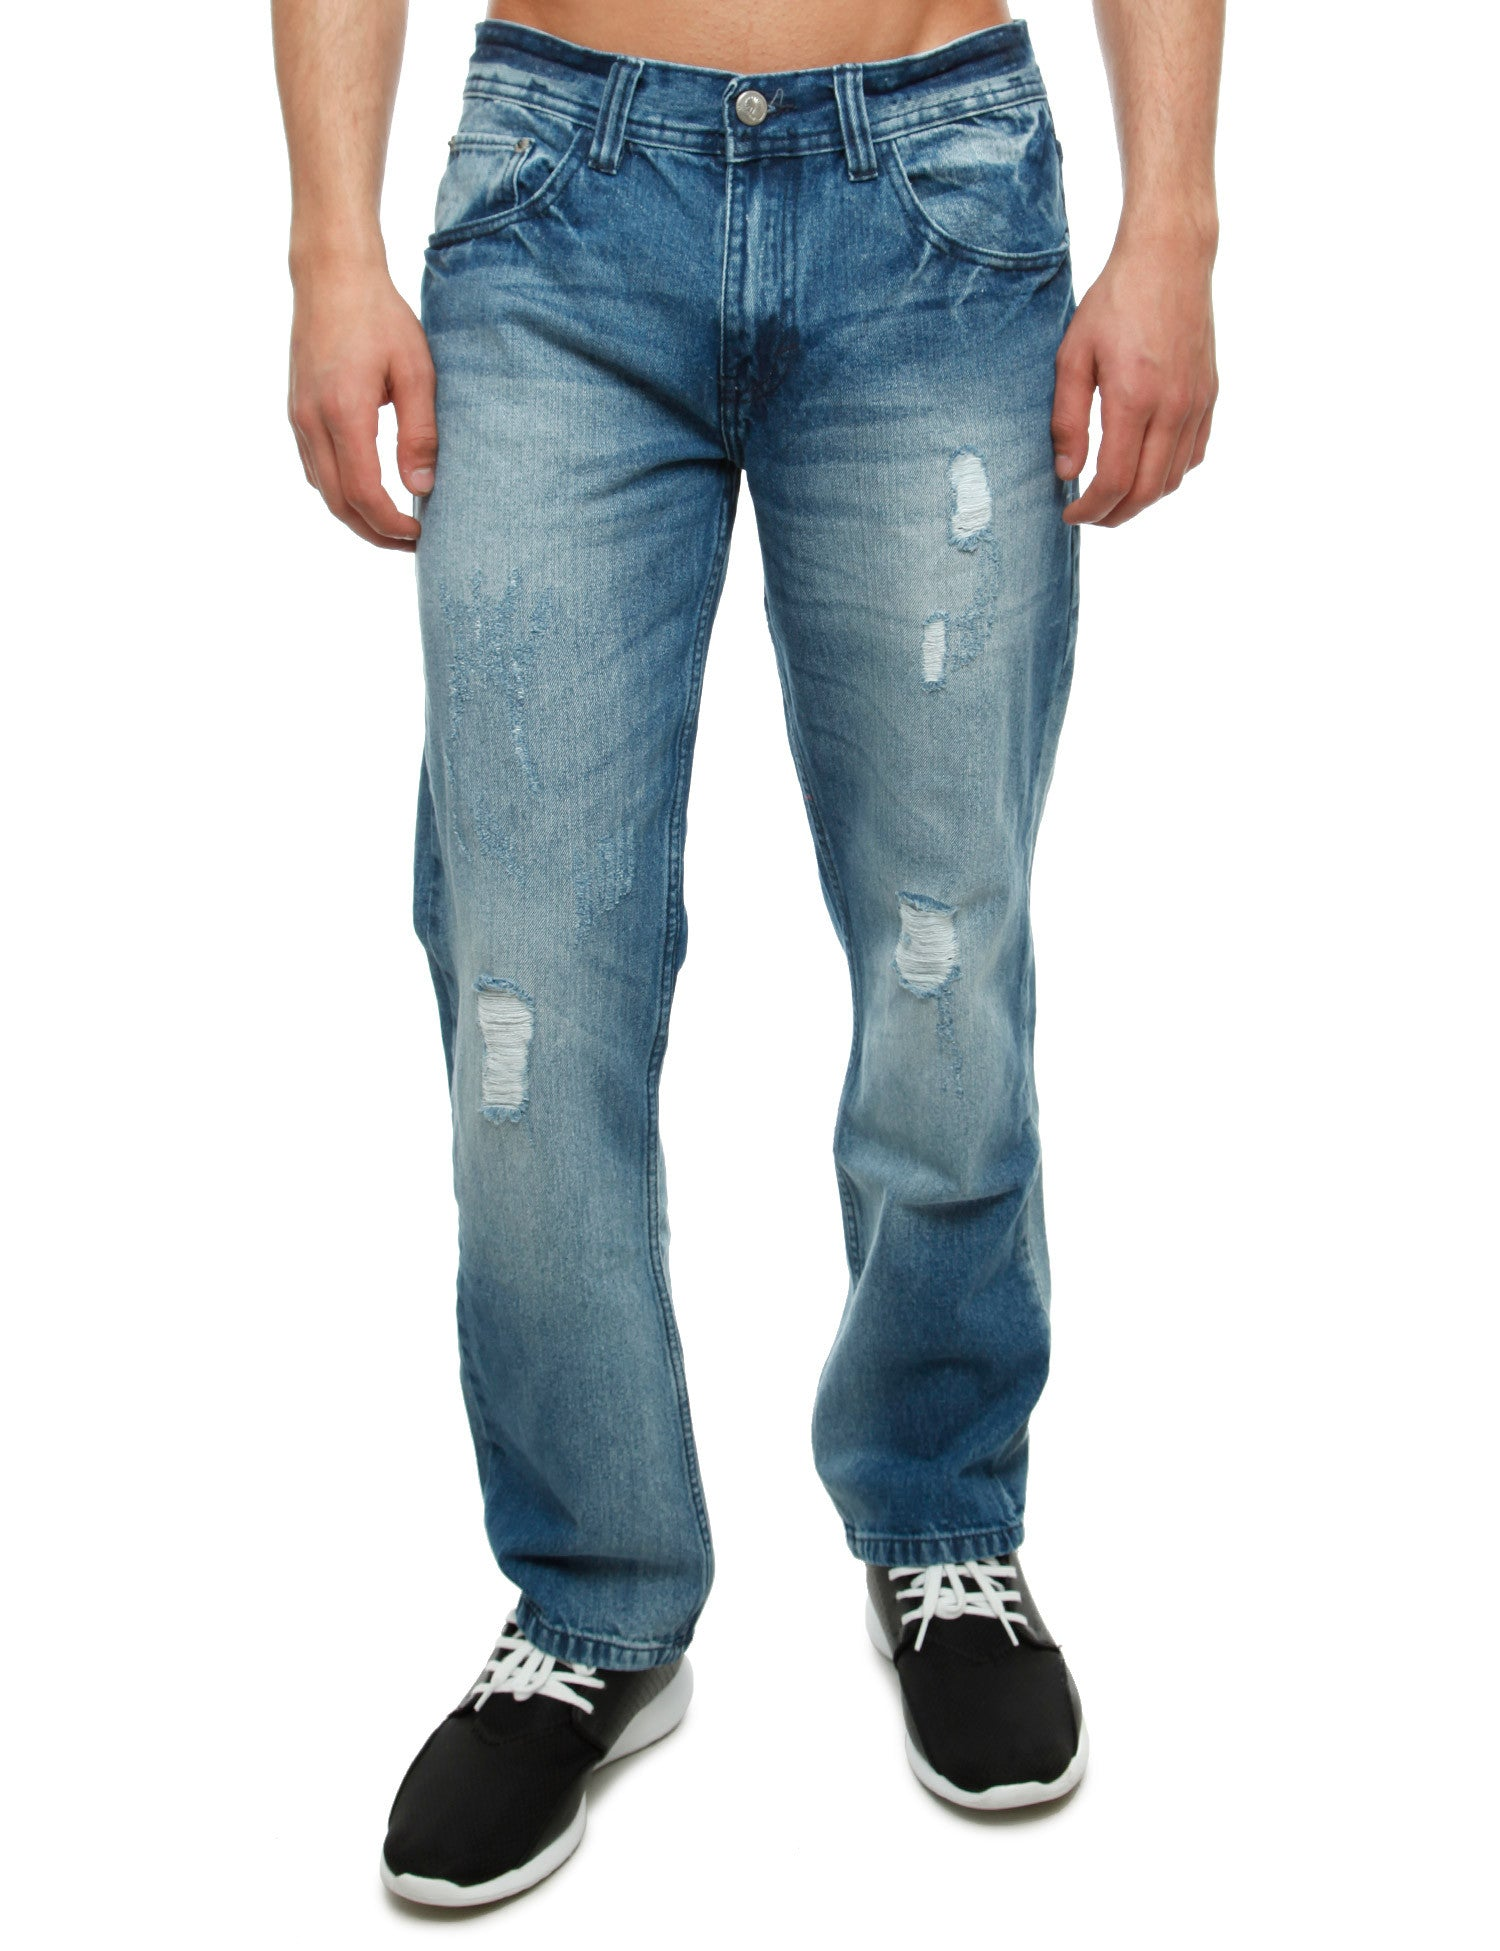 Akademiks SEMINOLE Jeans A16JN10 Light Indigo Blue